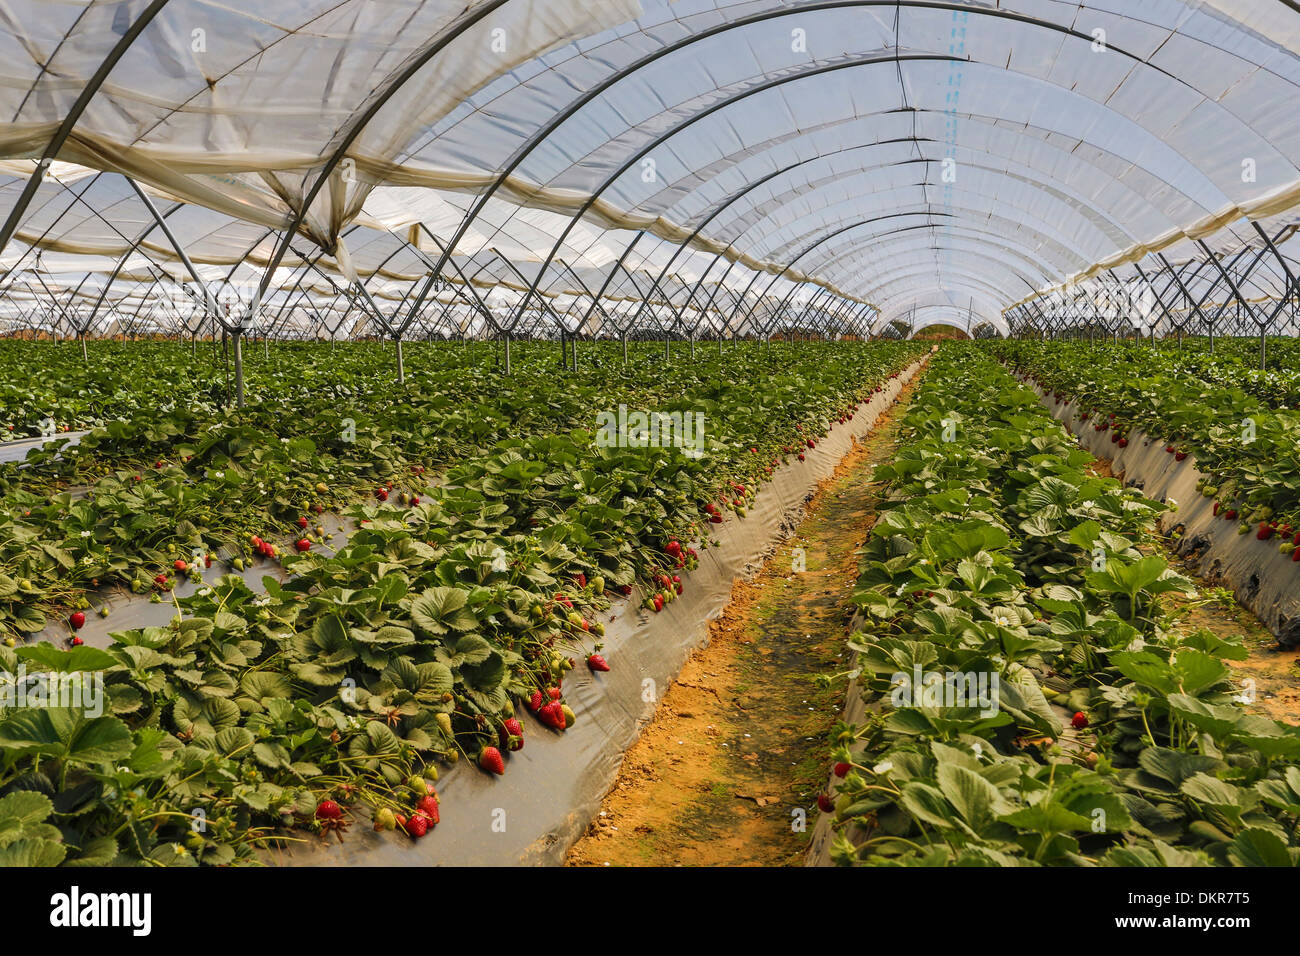 STRAWBERRY INDUSTRY IN CHINA